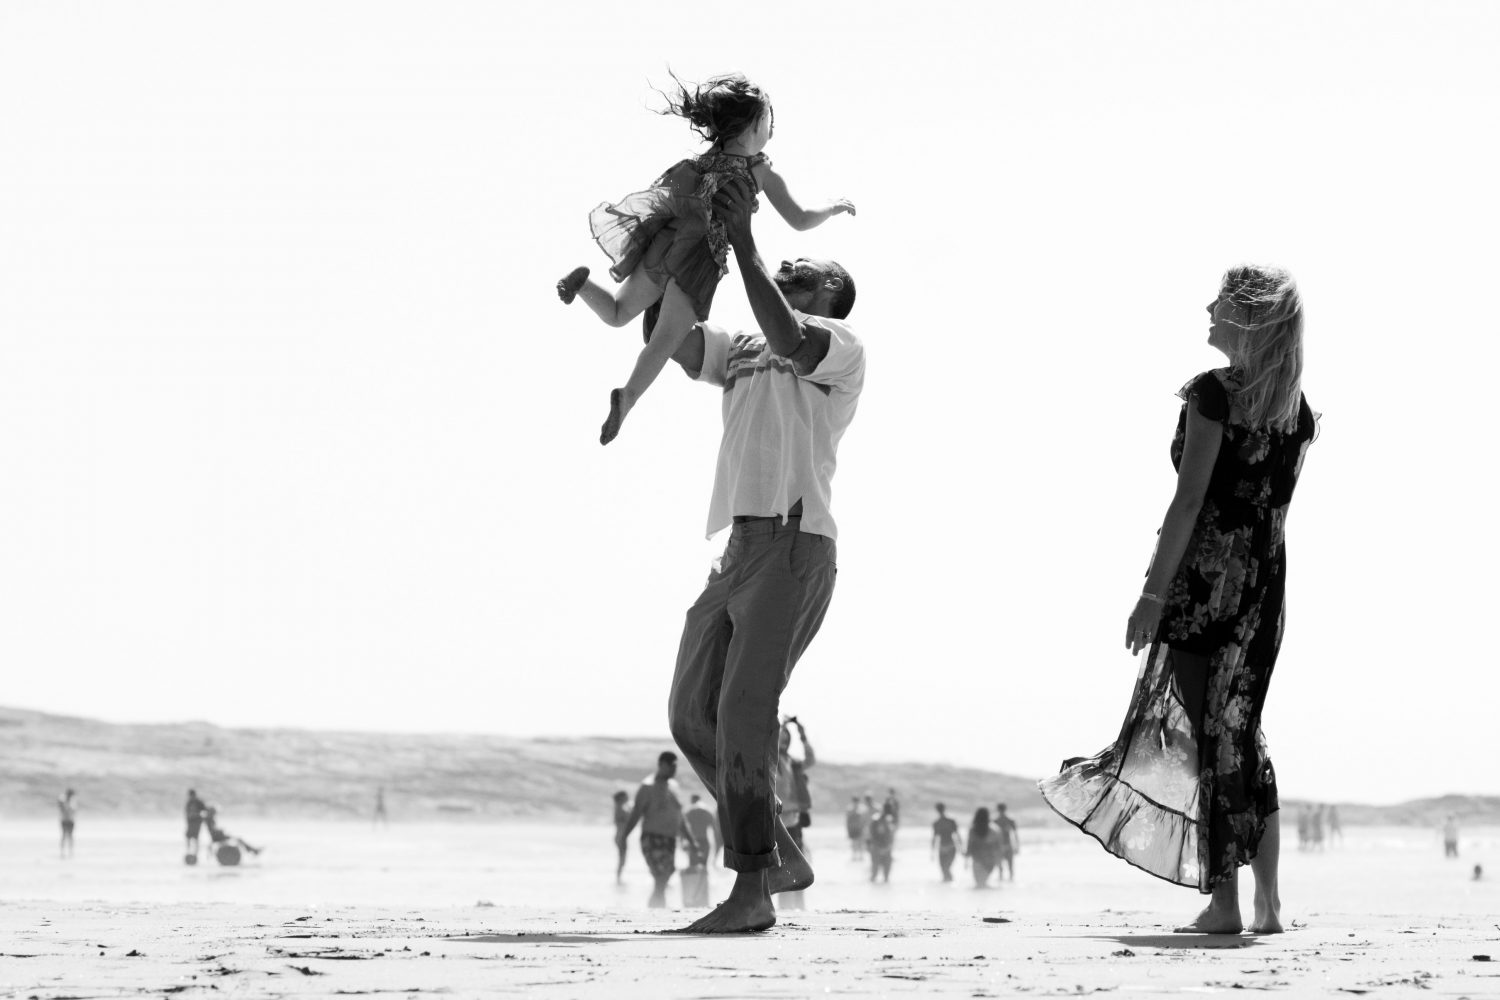 father tossing daughter playfully into the air at the beach